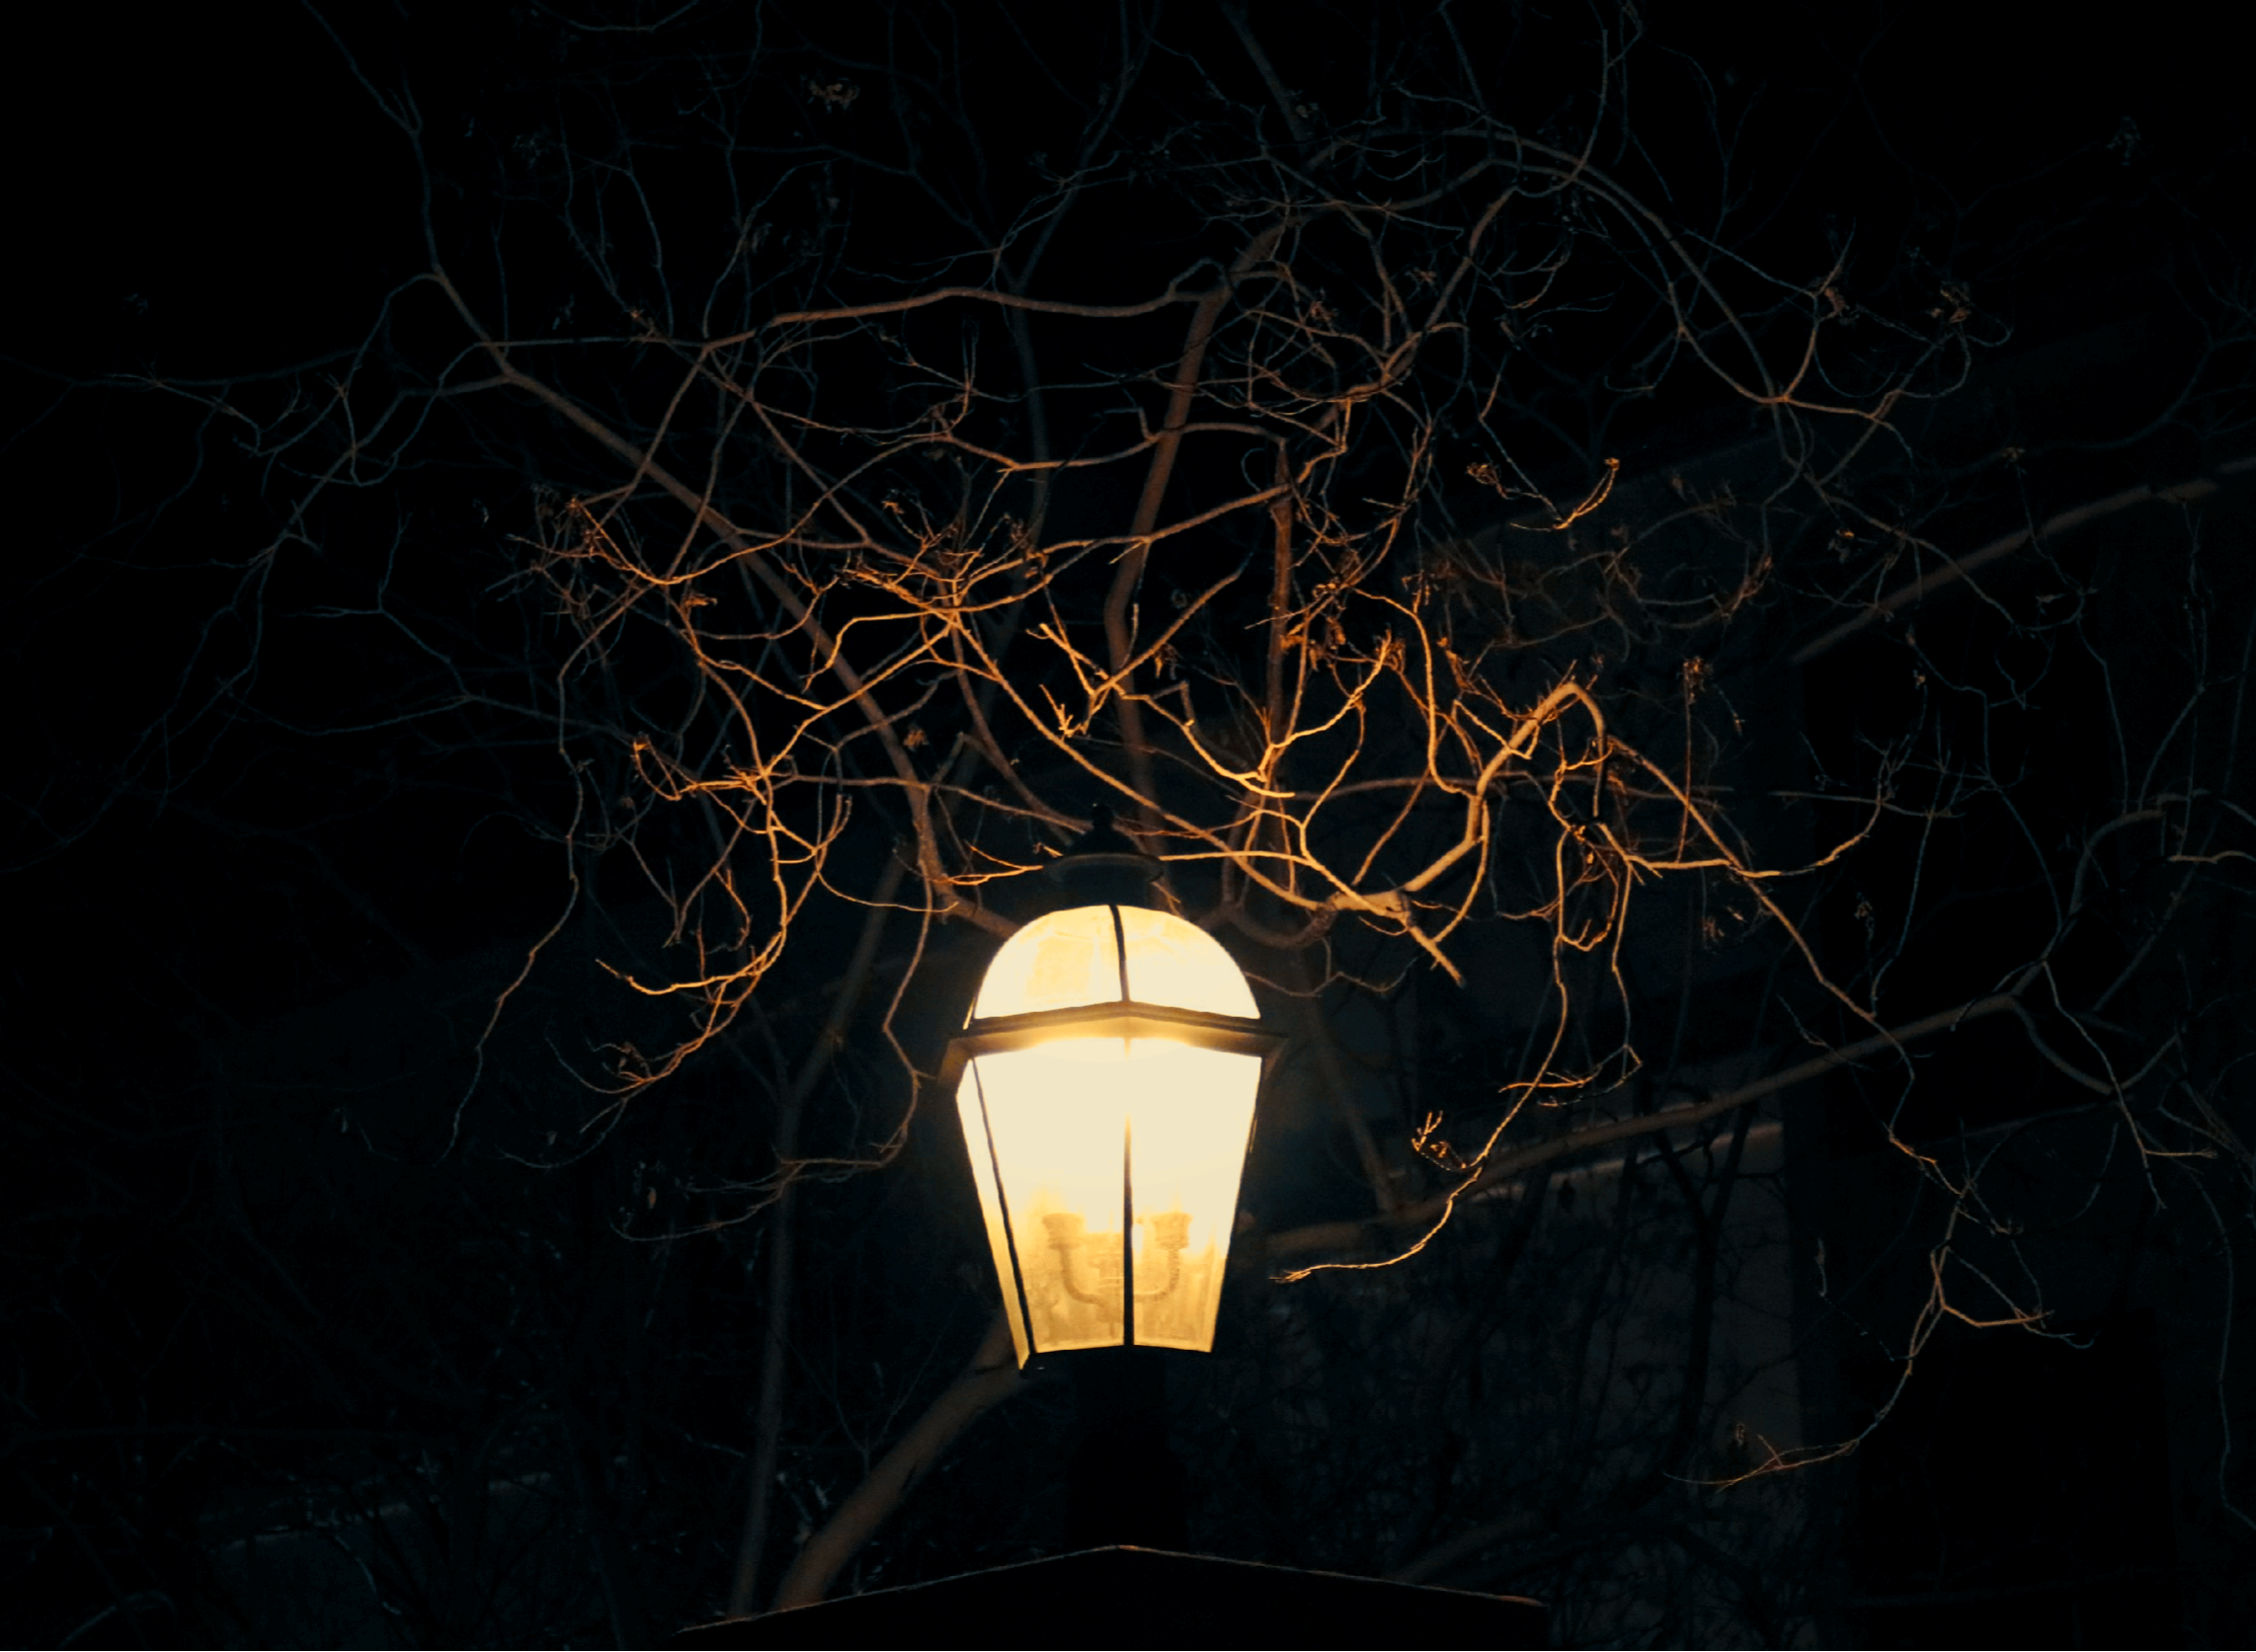 Night Lamp Edit 2